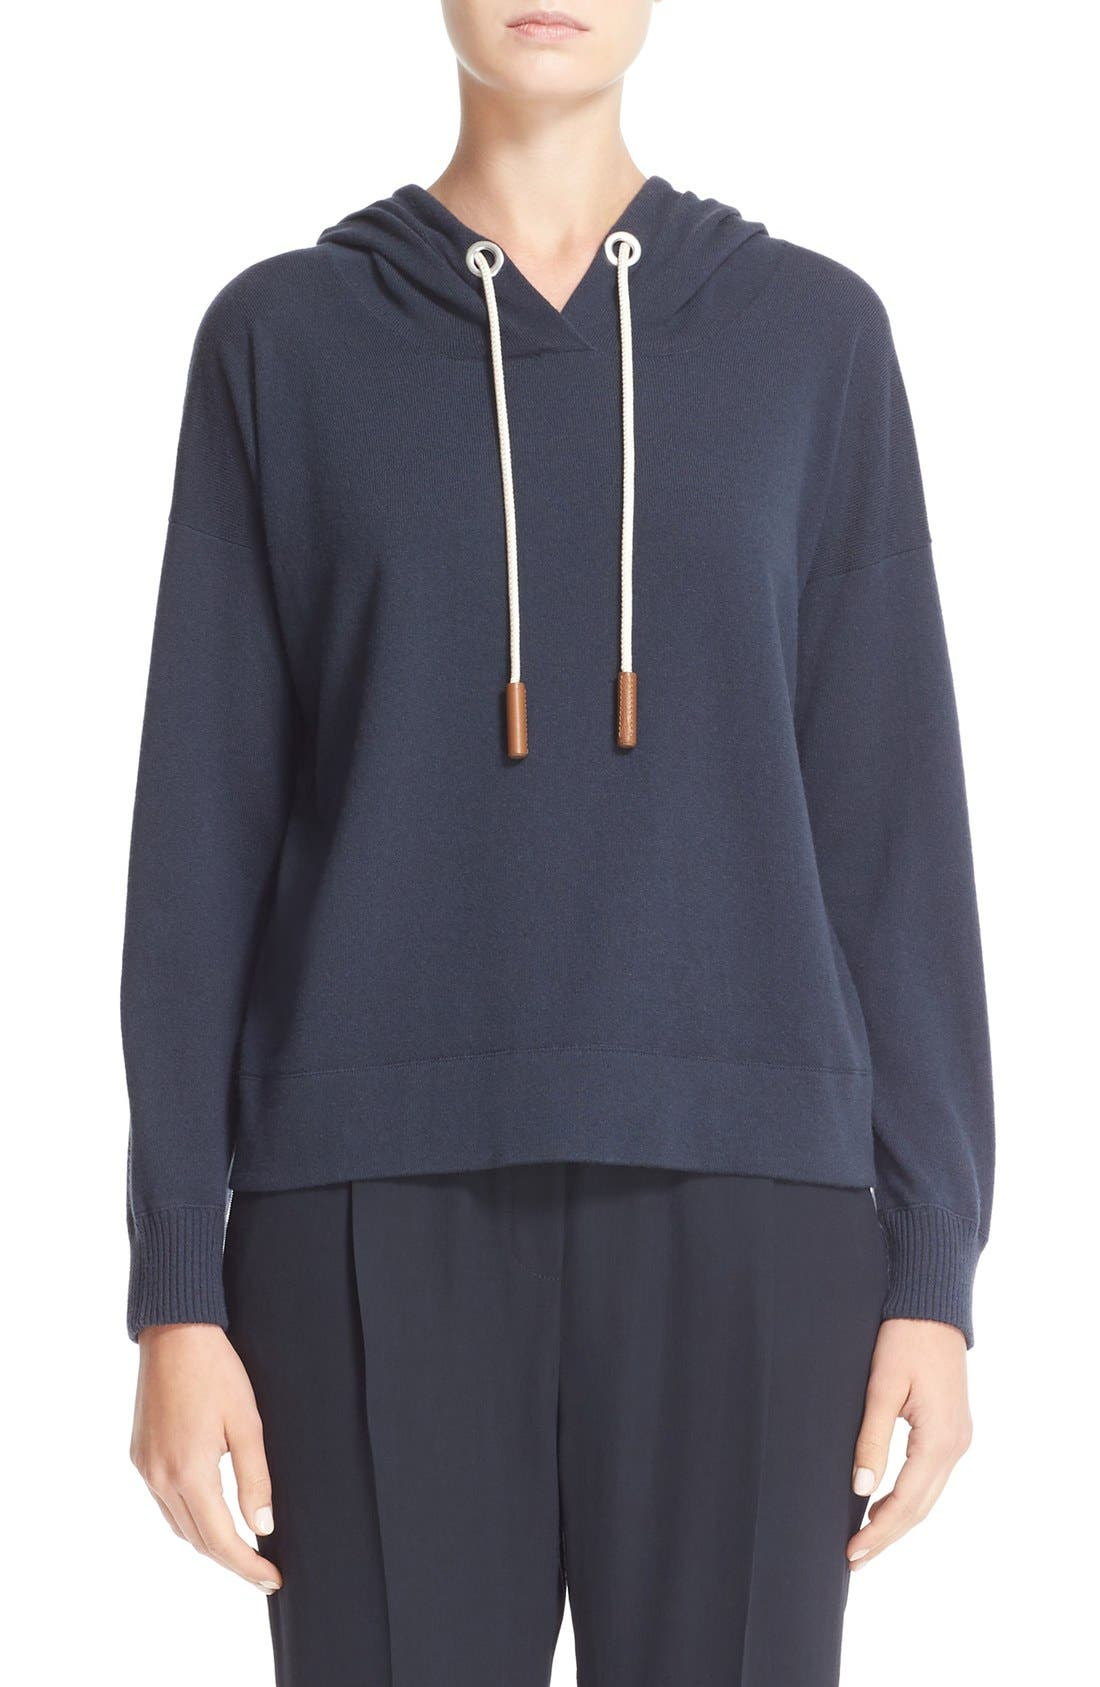 Cashmere Hooded Sweatshirt,                         Main,                         color, 400